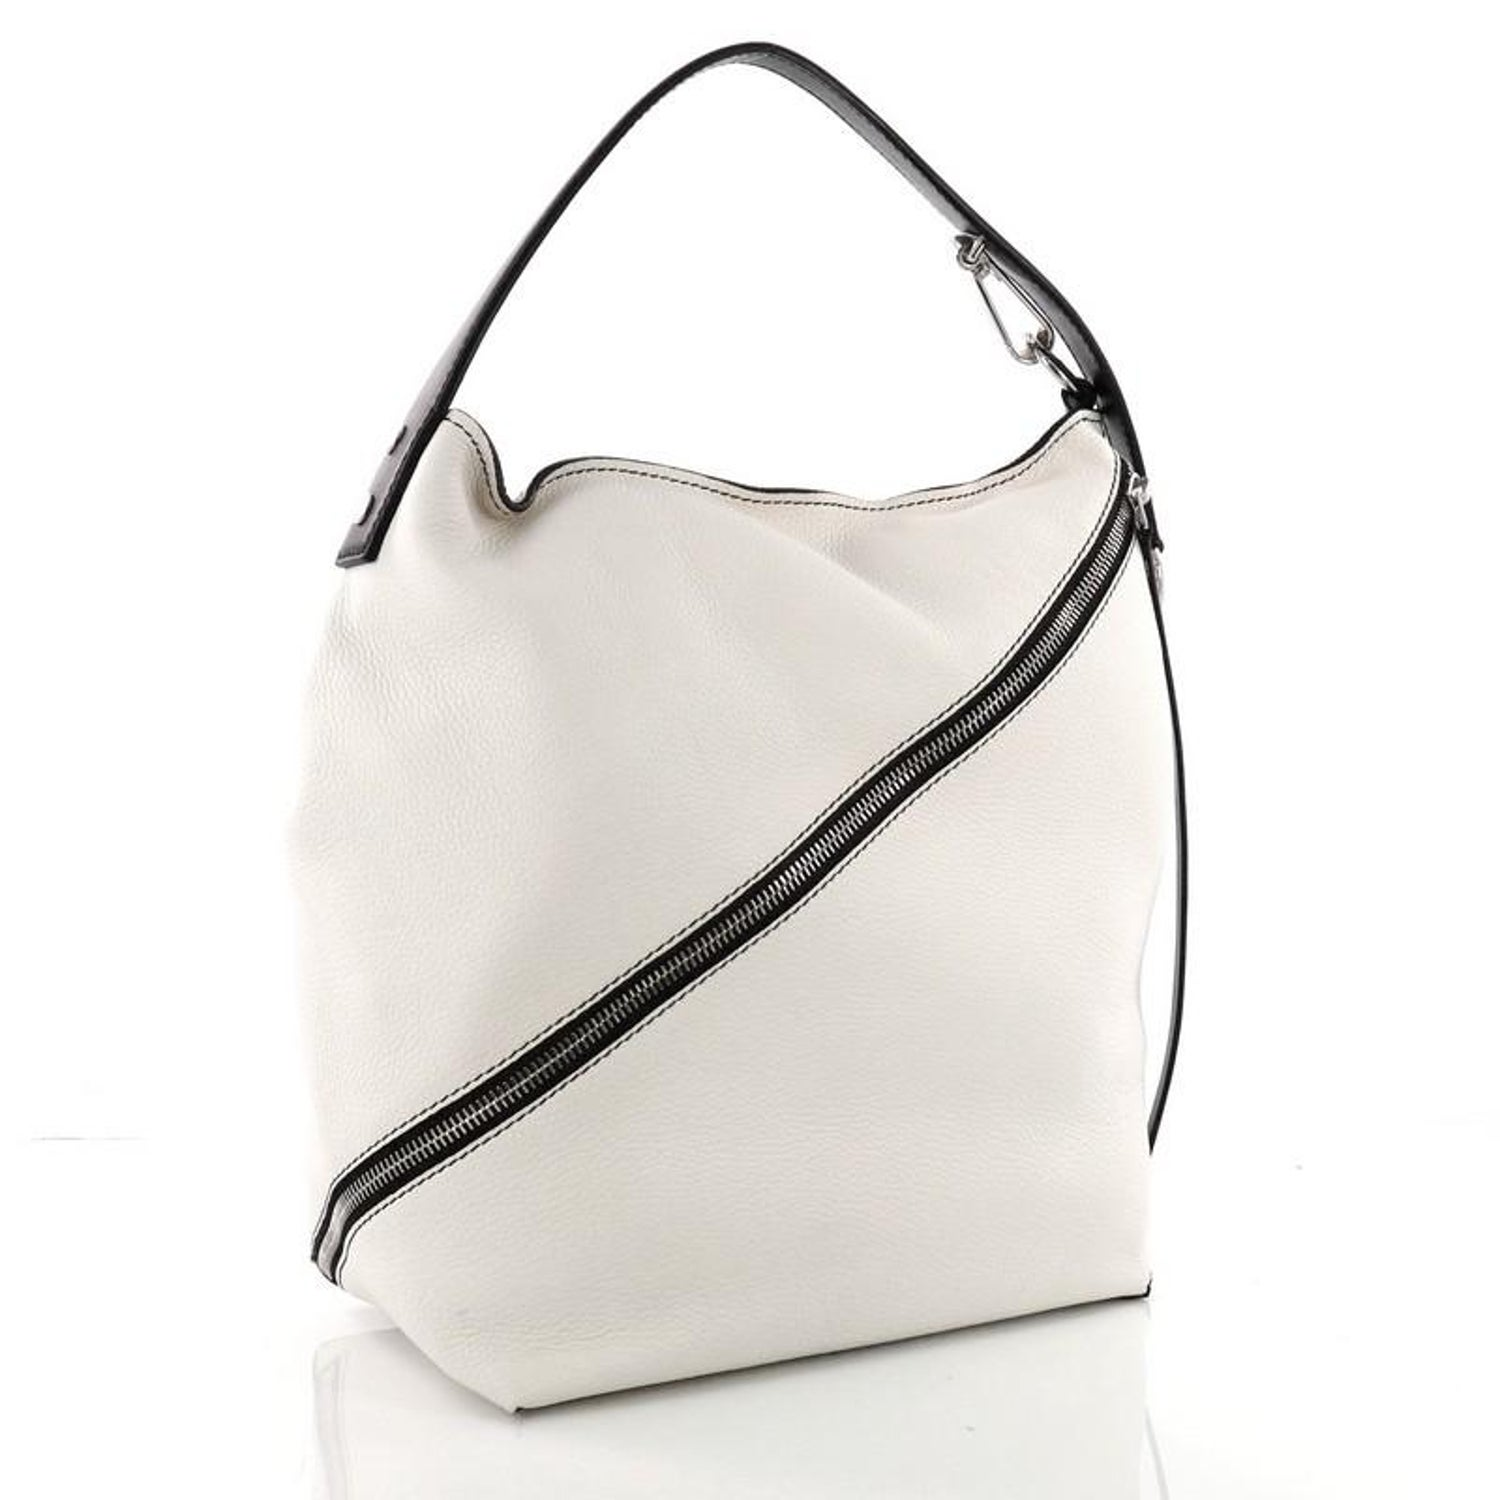 ffb04316328f Proenza Schouler Zip Hobo Pebbled Leather Medium For Sale at 1stdibs